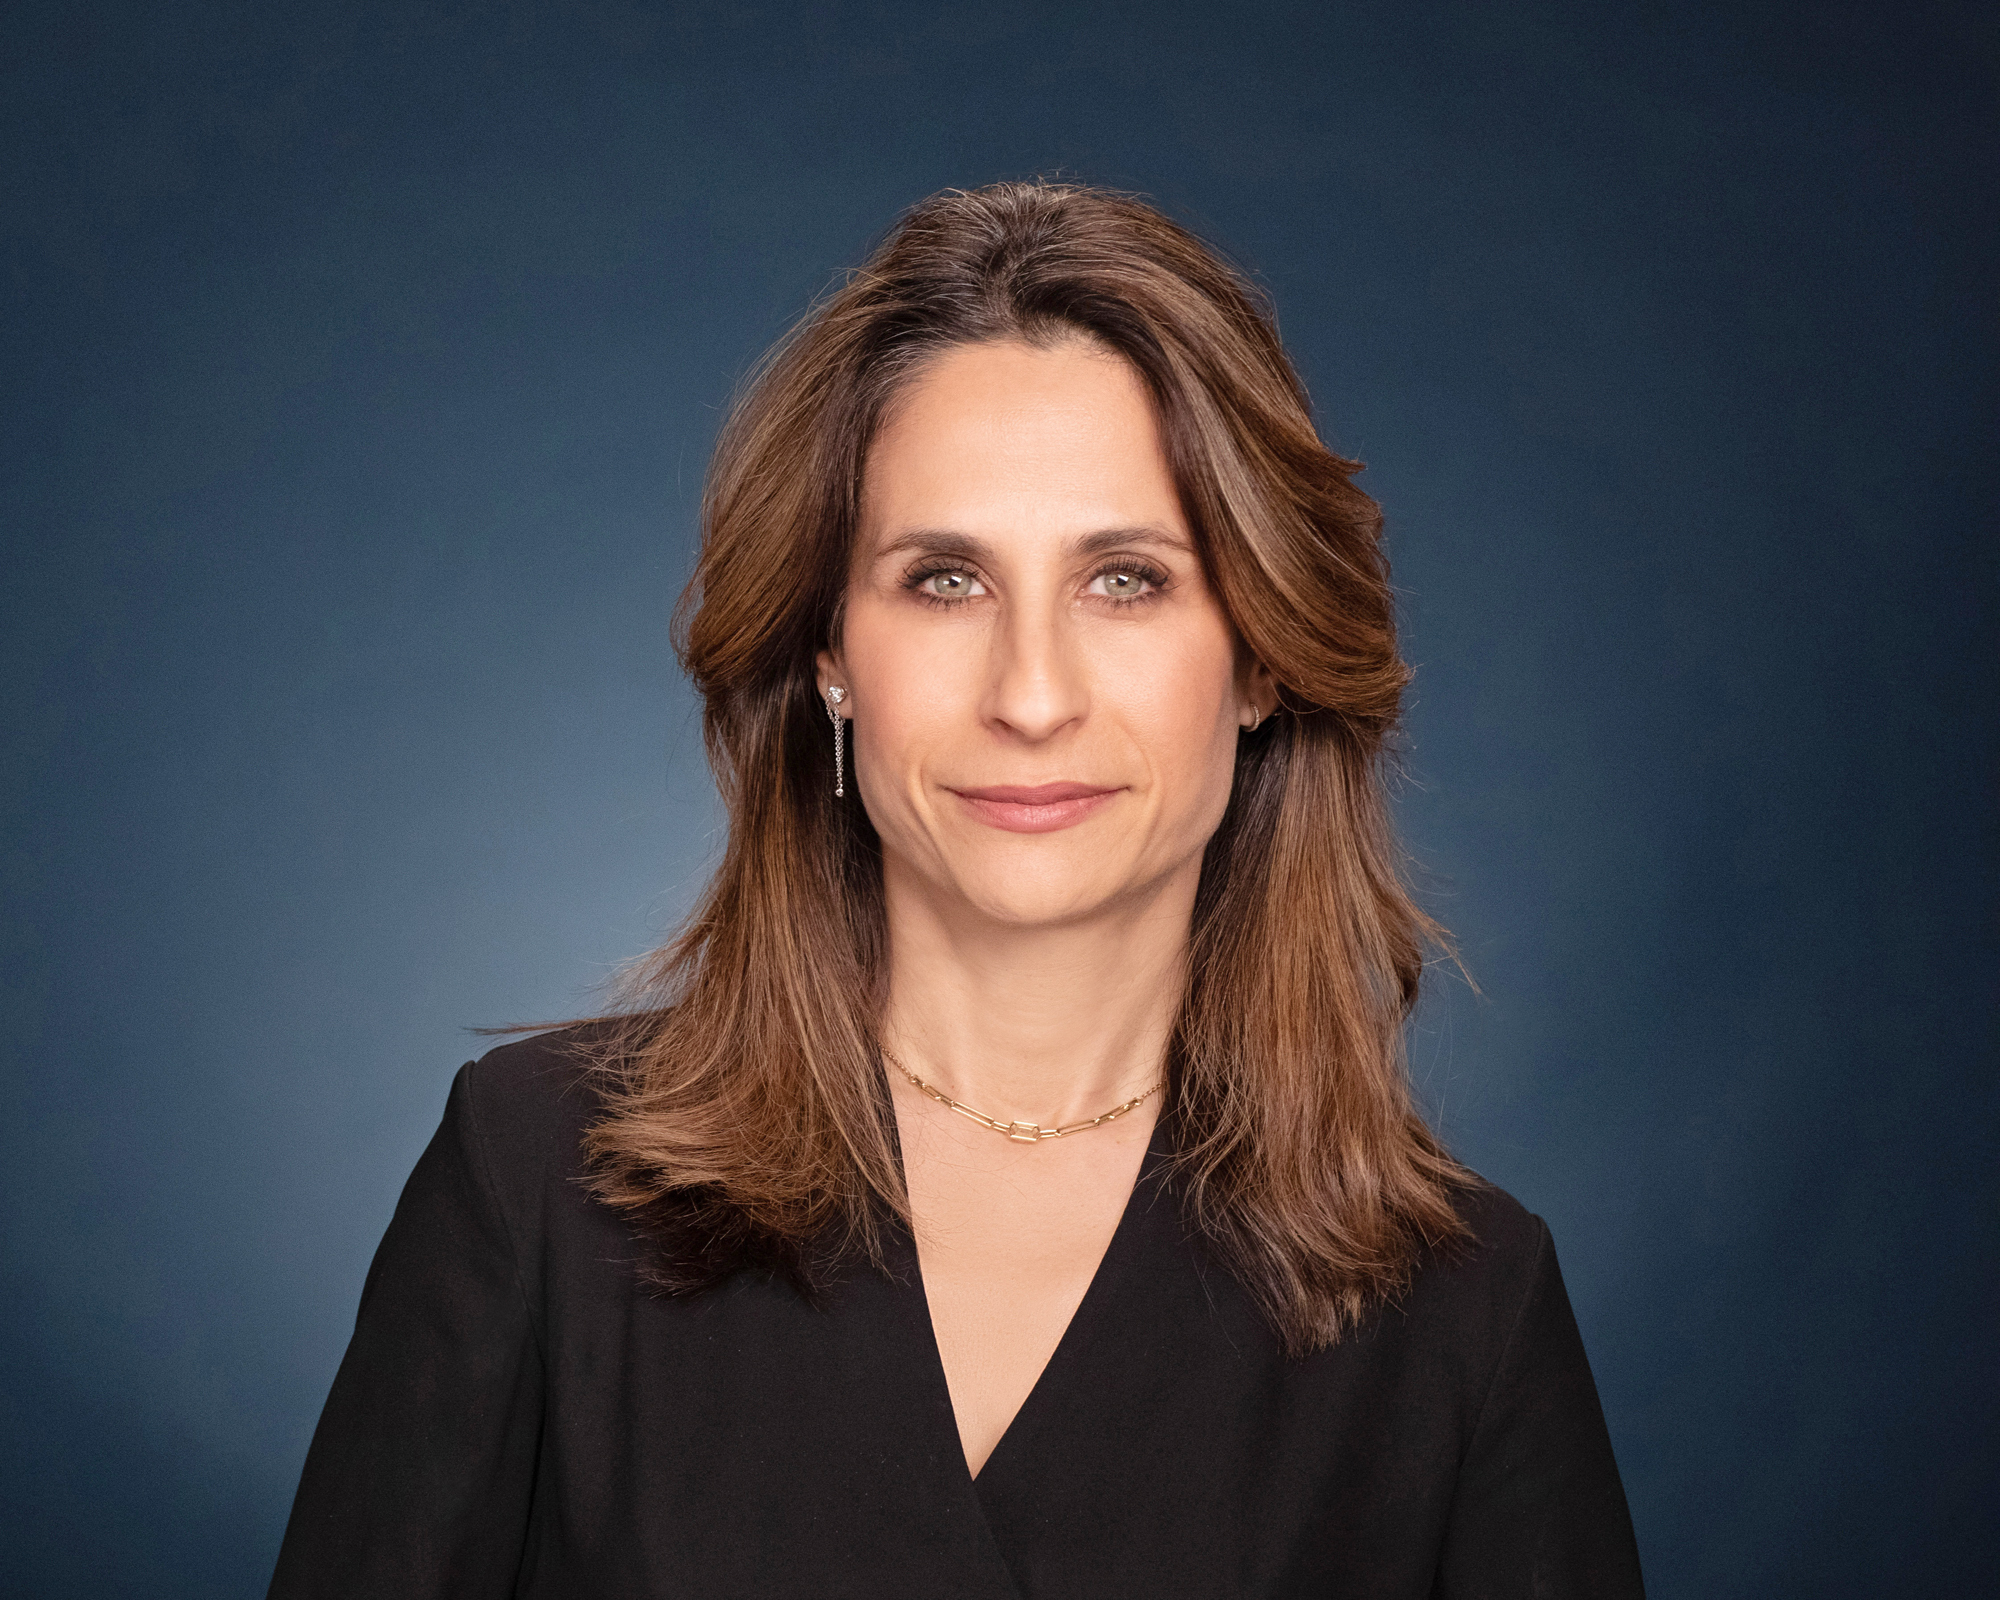 Minister of Innovation, Science and Technology Orit Farkash-Hacohen. Photo: Elad Malka